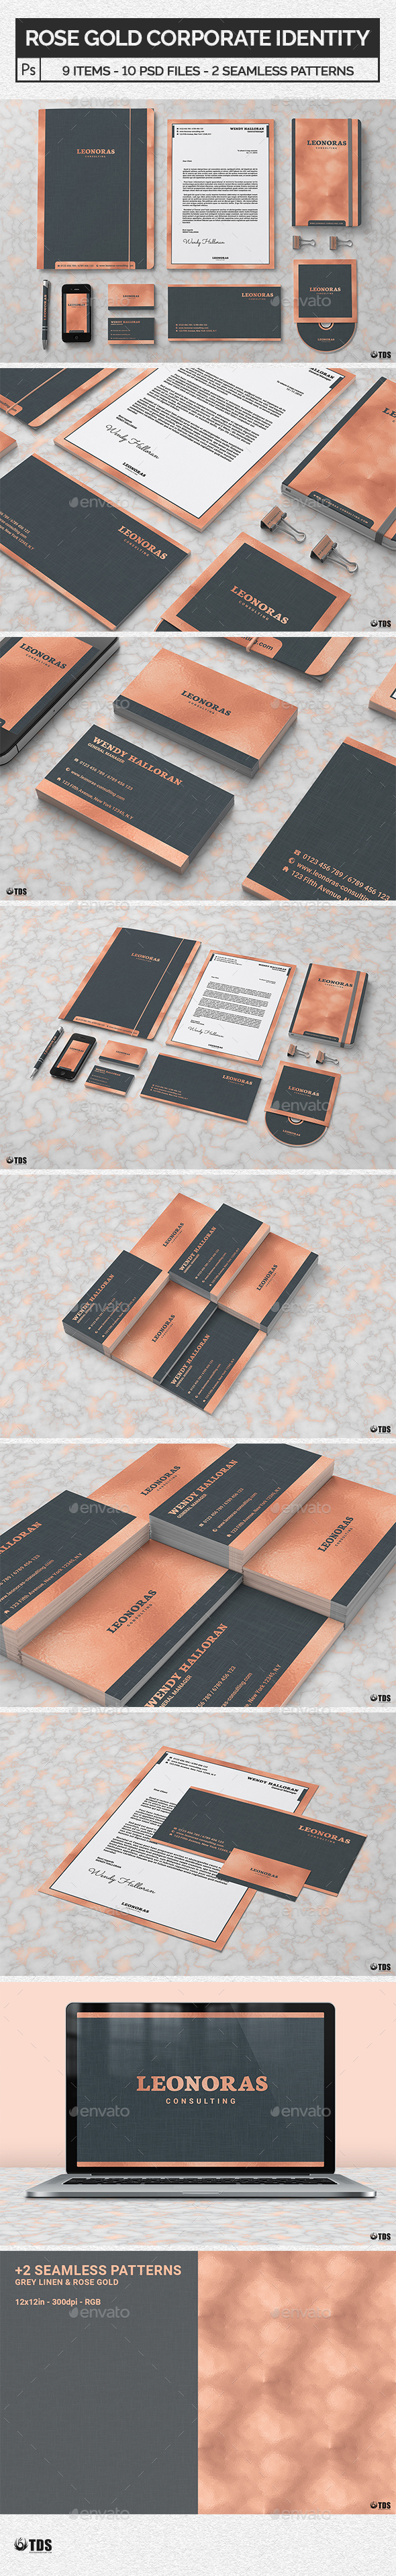 Rose Gold Corporate Identity Template - Stationery Print Templates